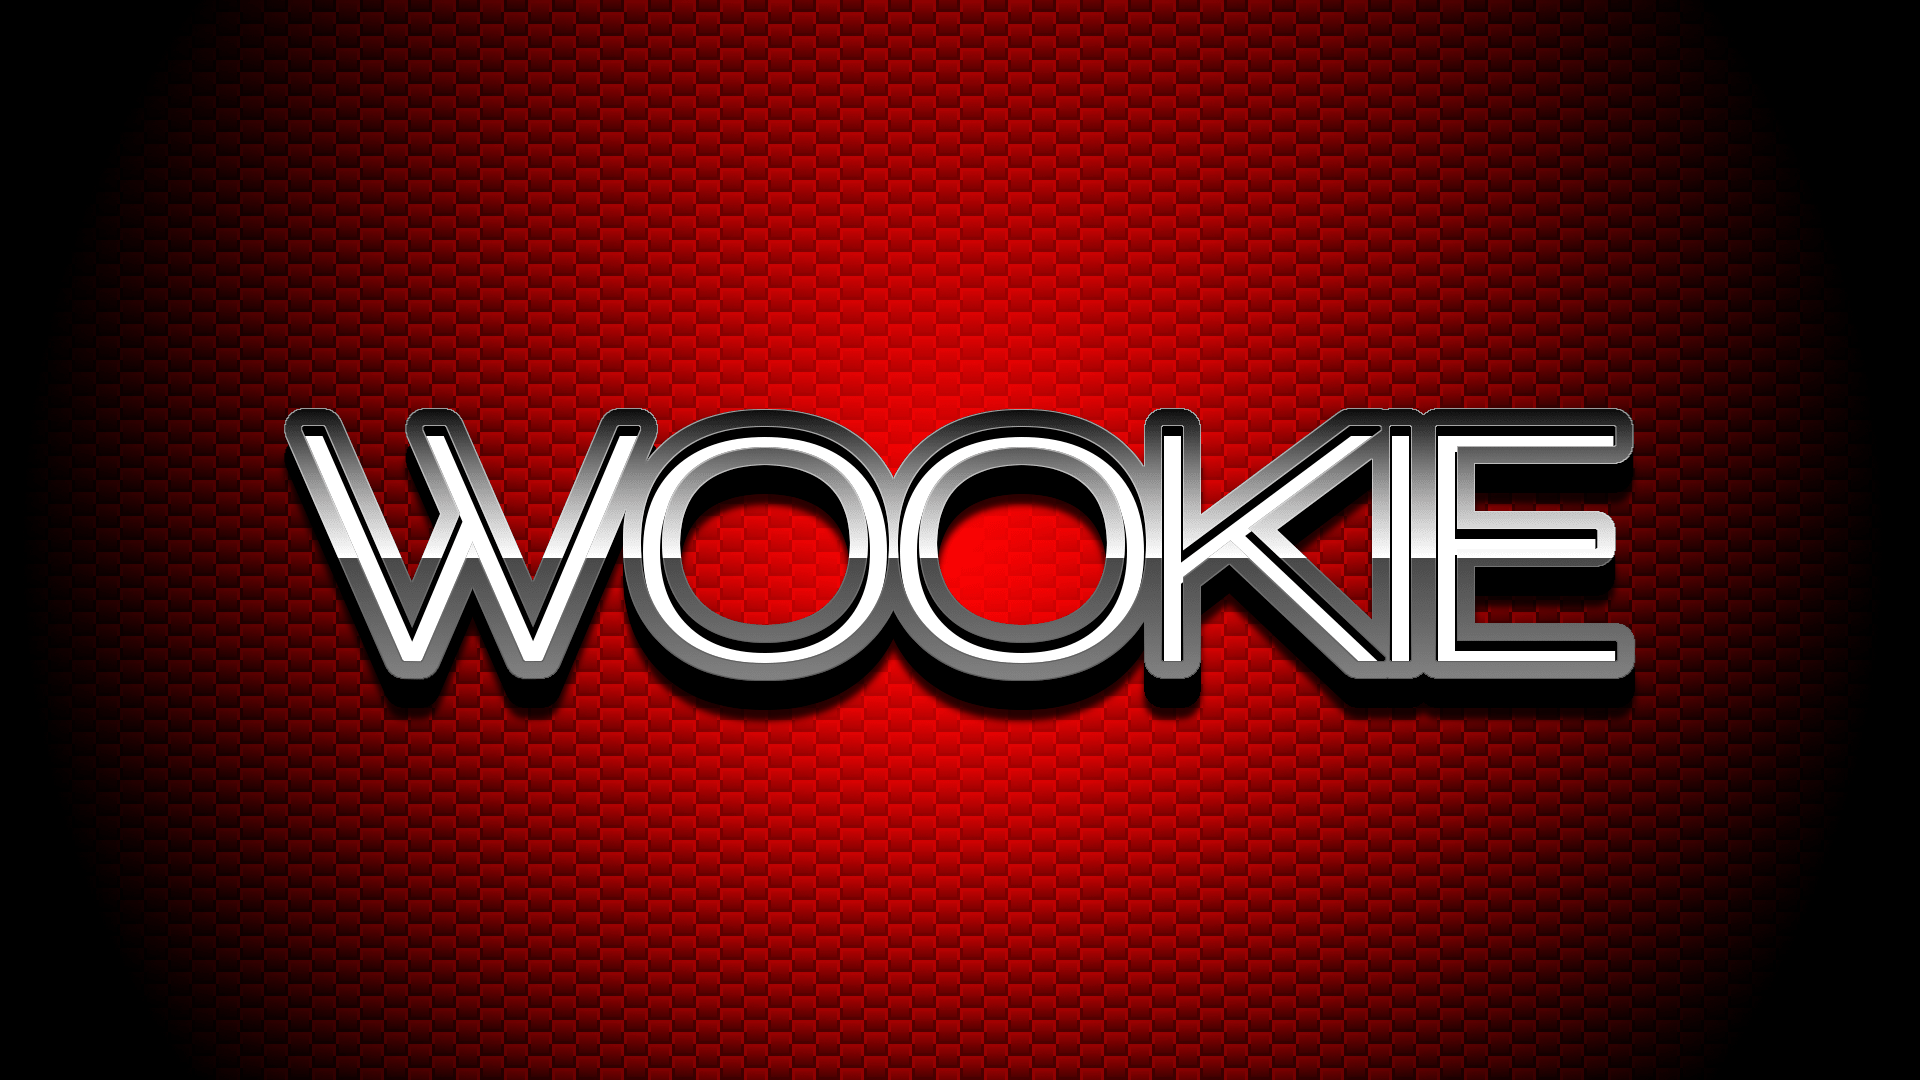 How To Install Kodi 17.1 Wookie Build